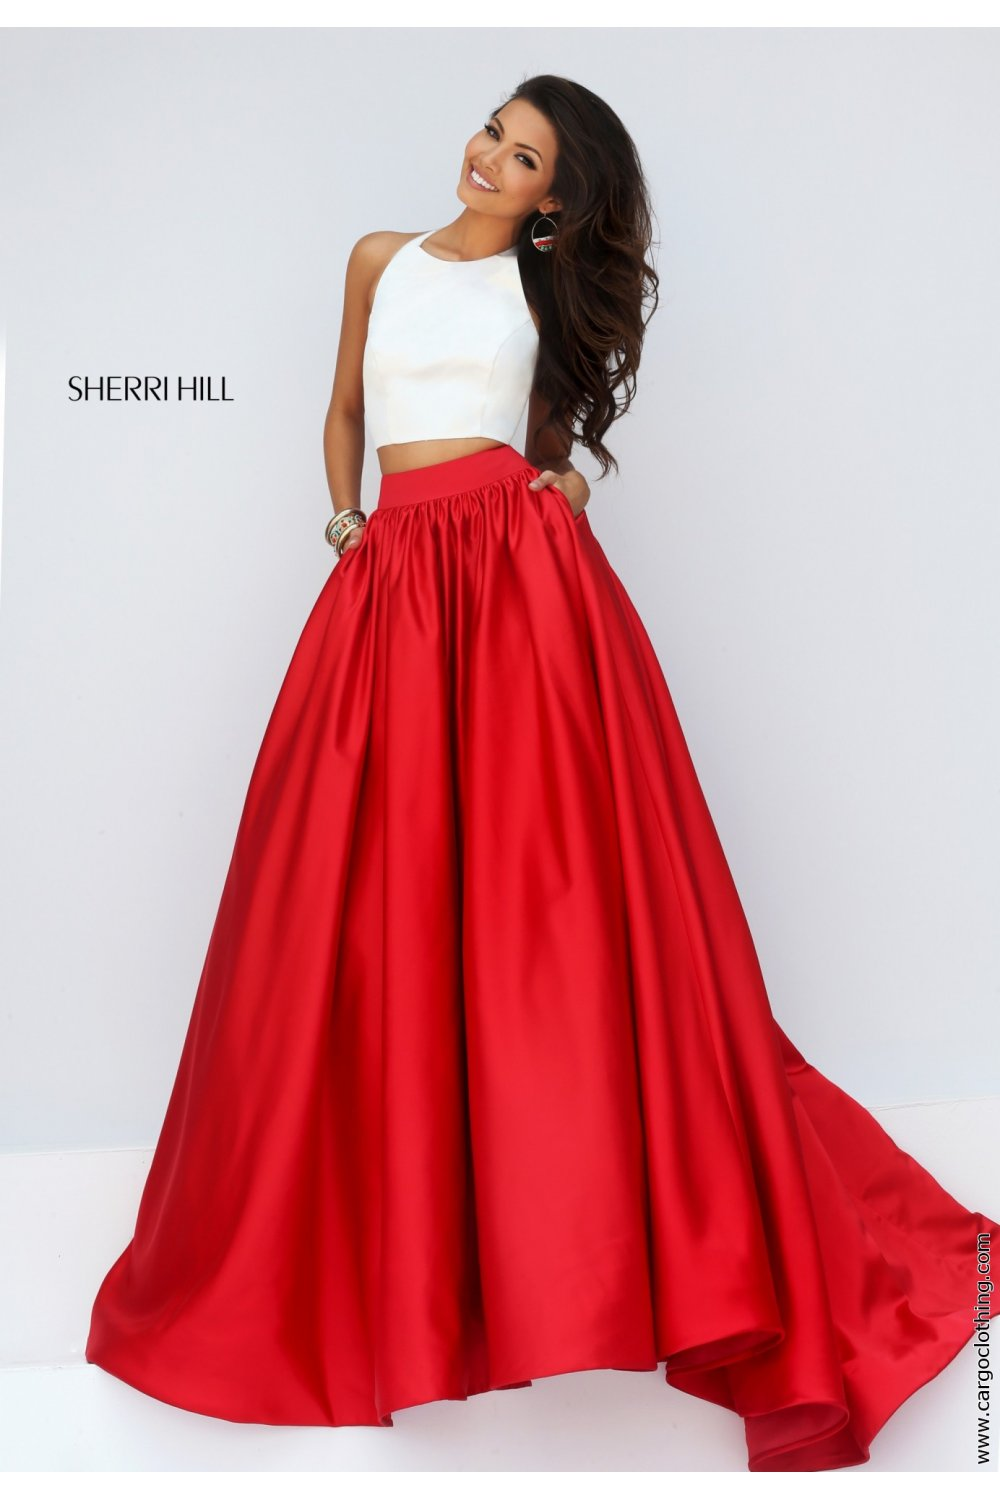 Sherri Hill 2 piece in contrast colours. The 50134 full skirted dress